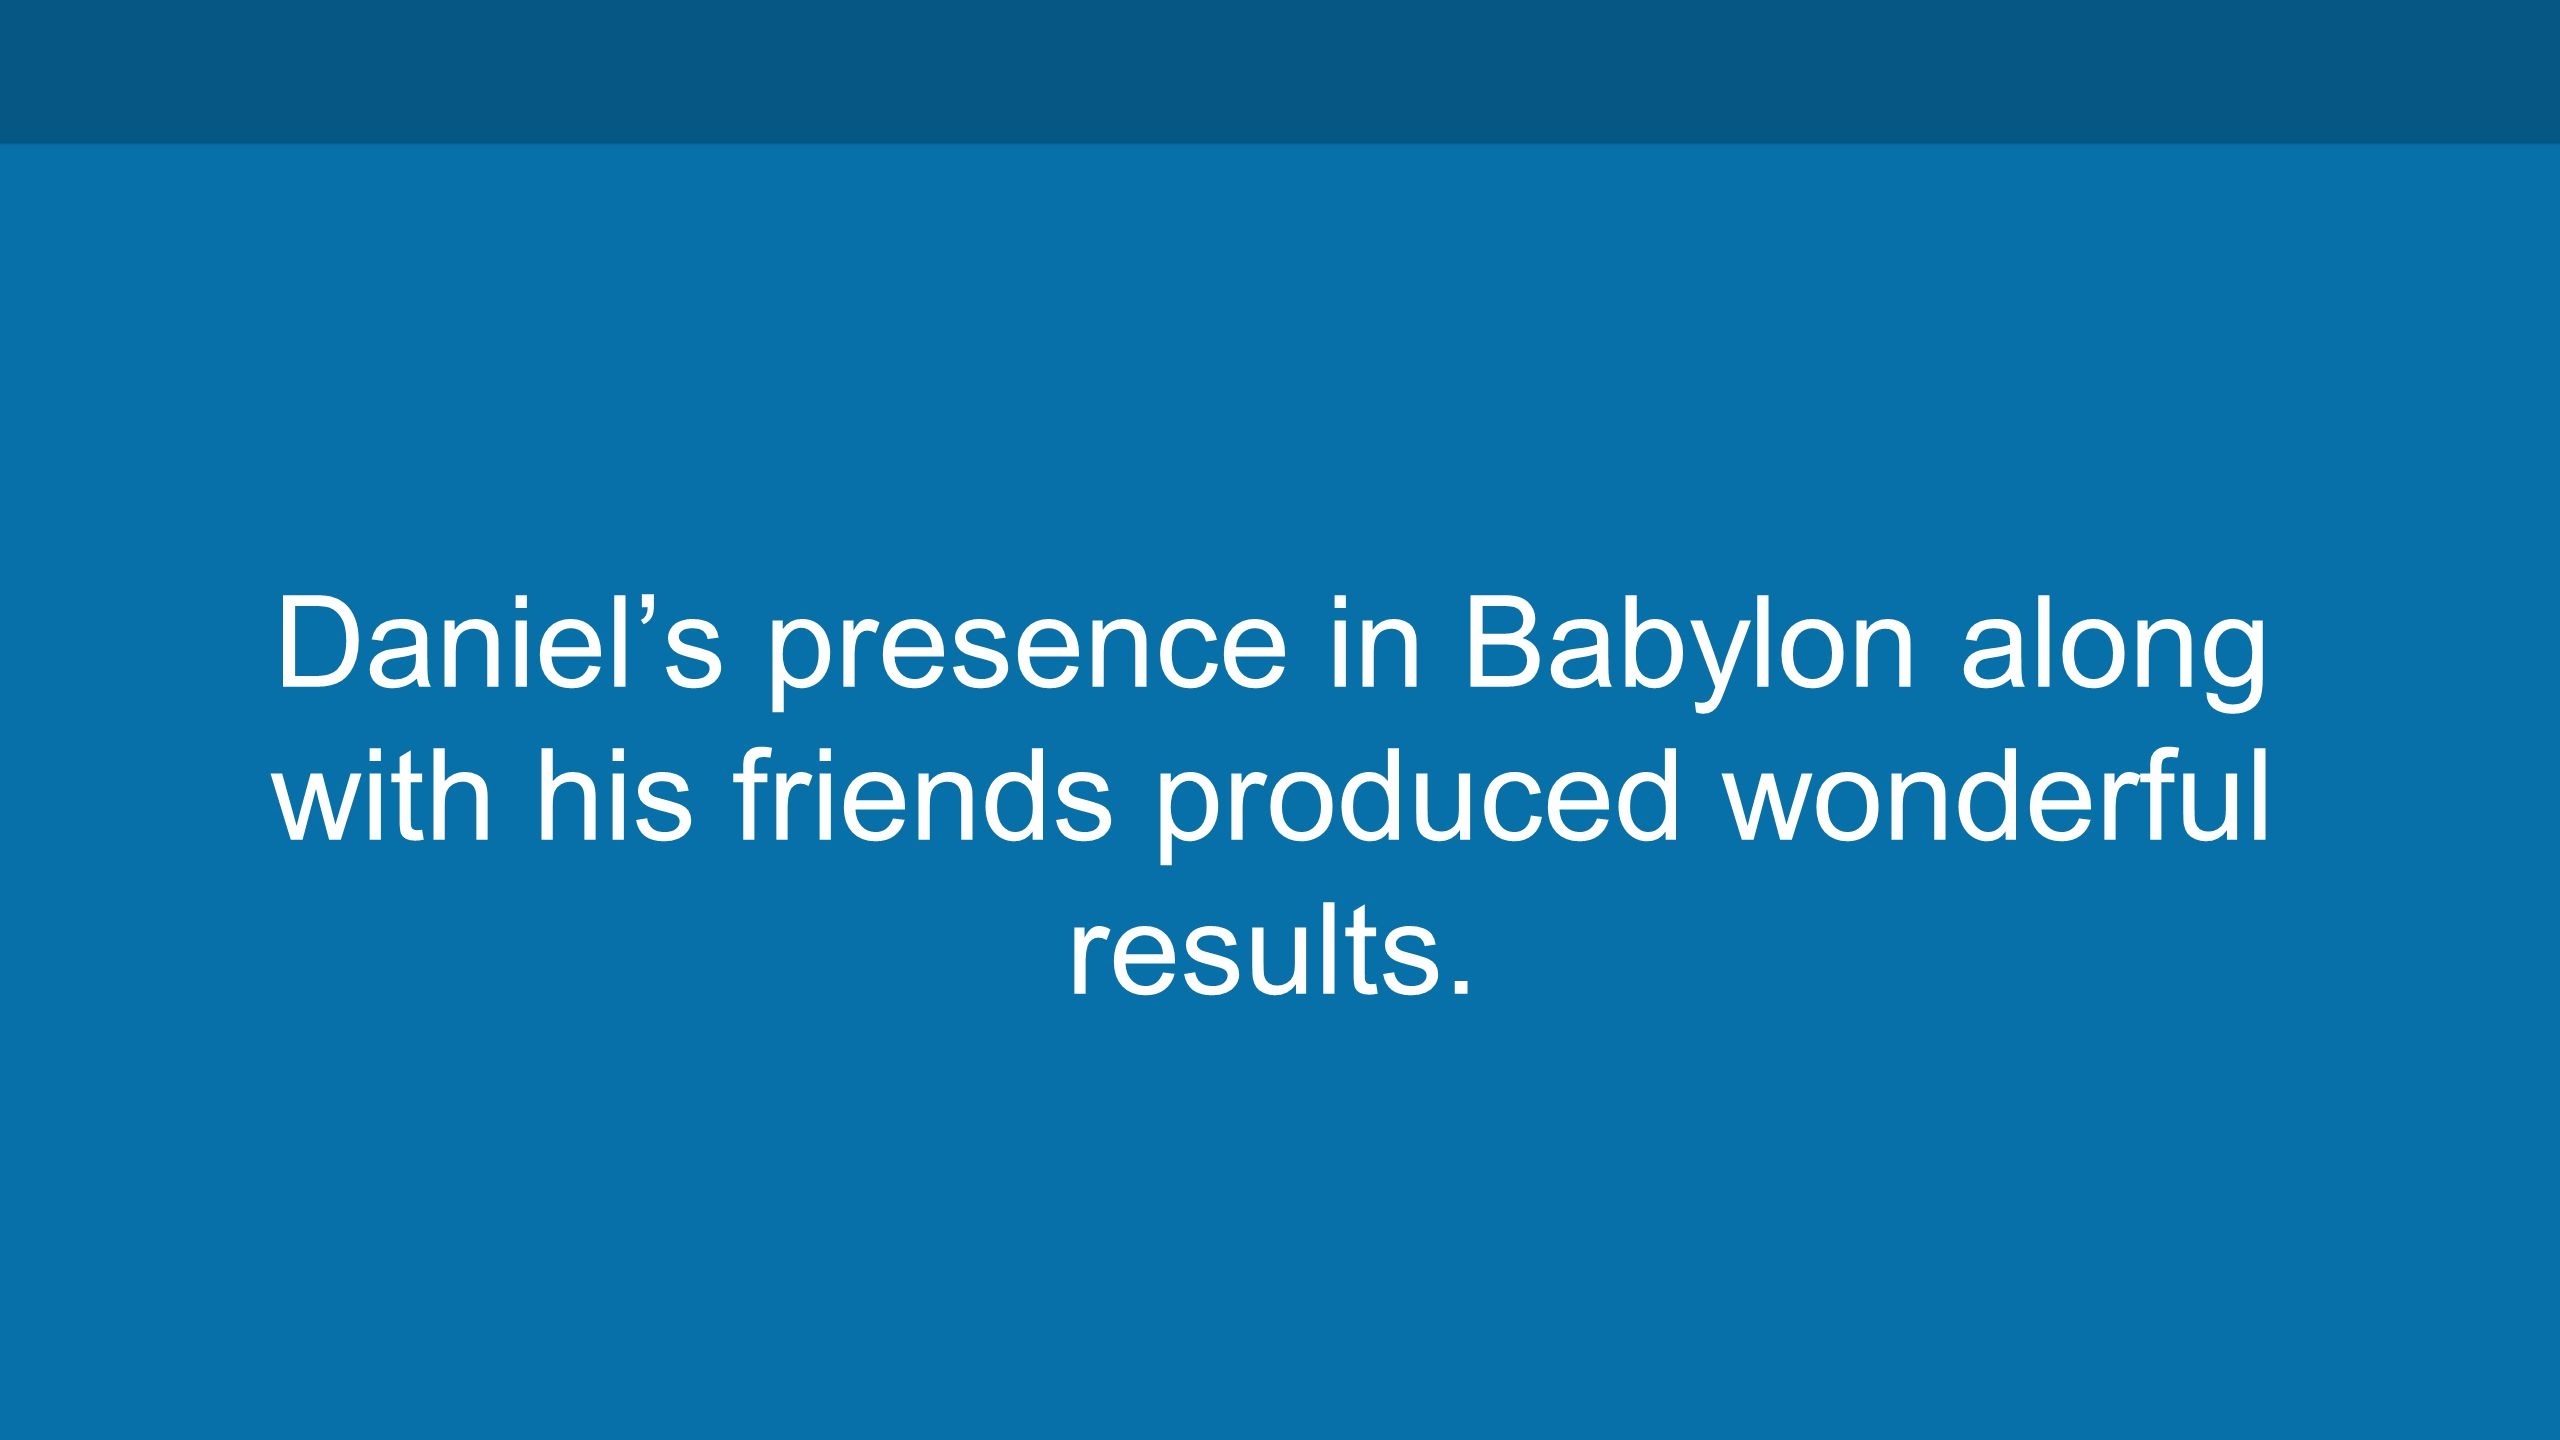 Daniel's presence in Babylon along with his friends produced wonderful results.